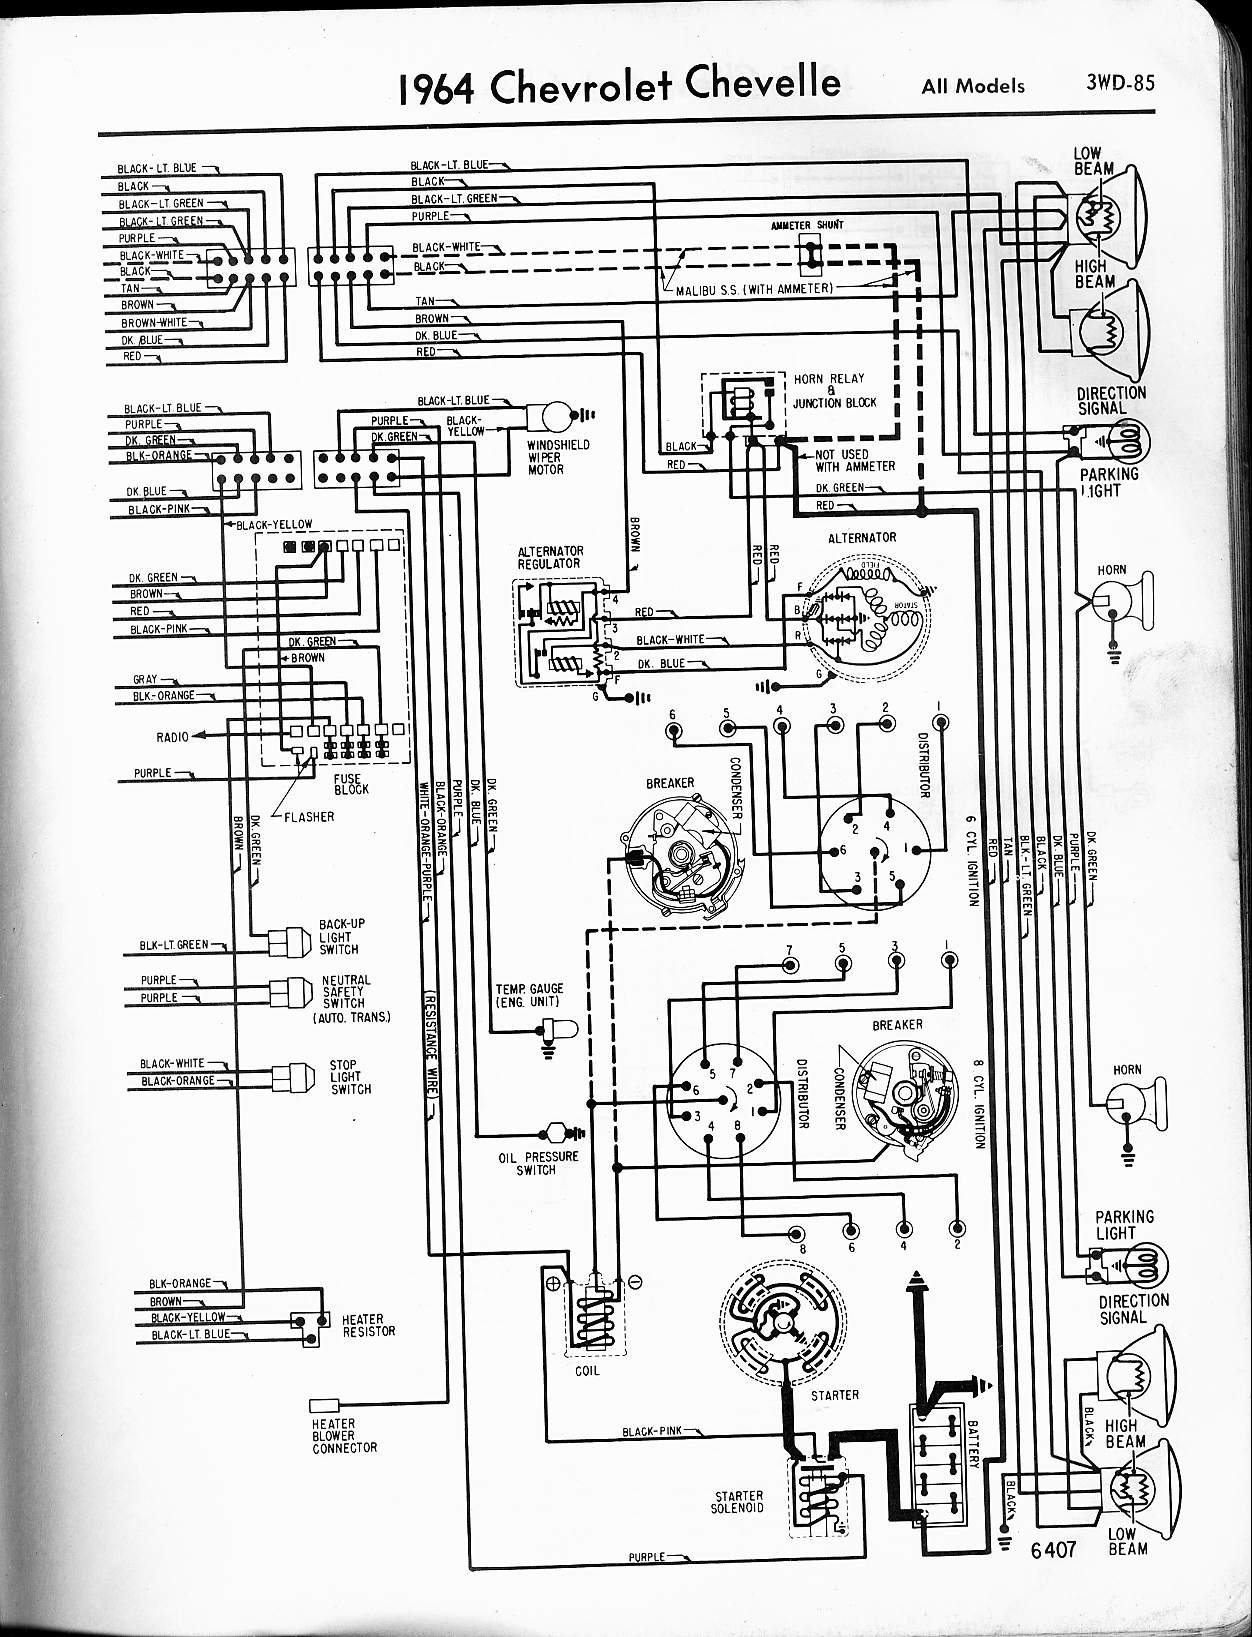 Chevy Tach Wiring Just Data 1967 Chevelle Blinker Diagram Opinions About Ignition Switch